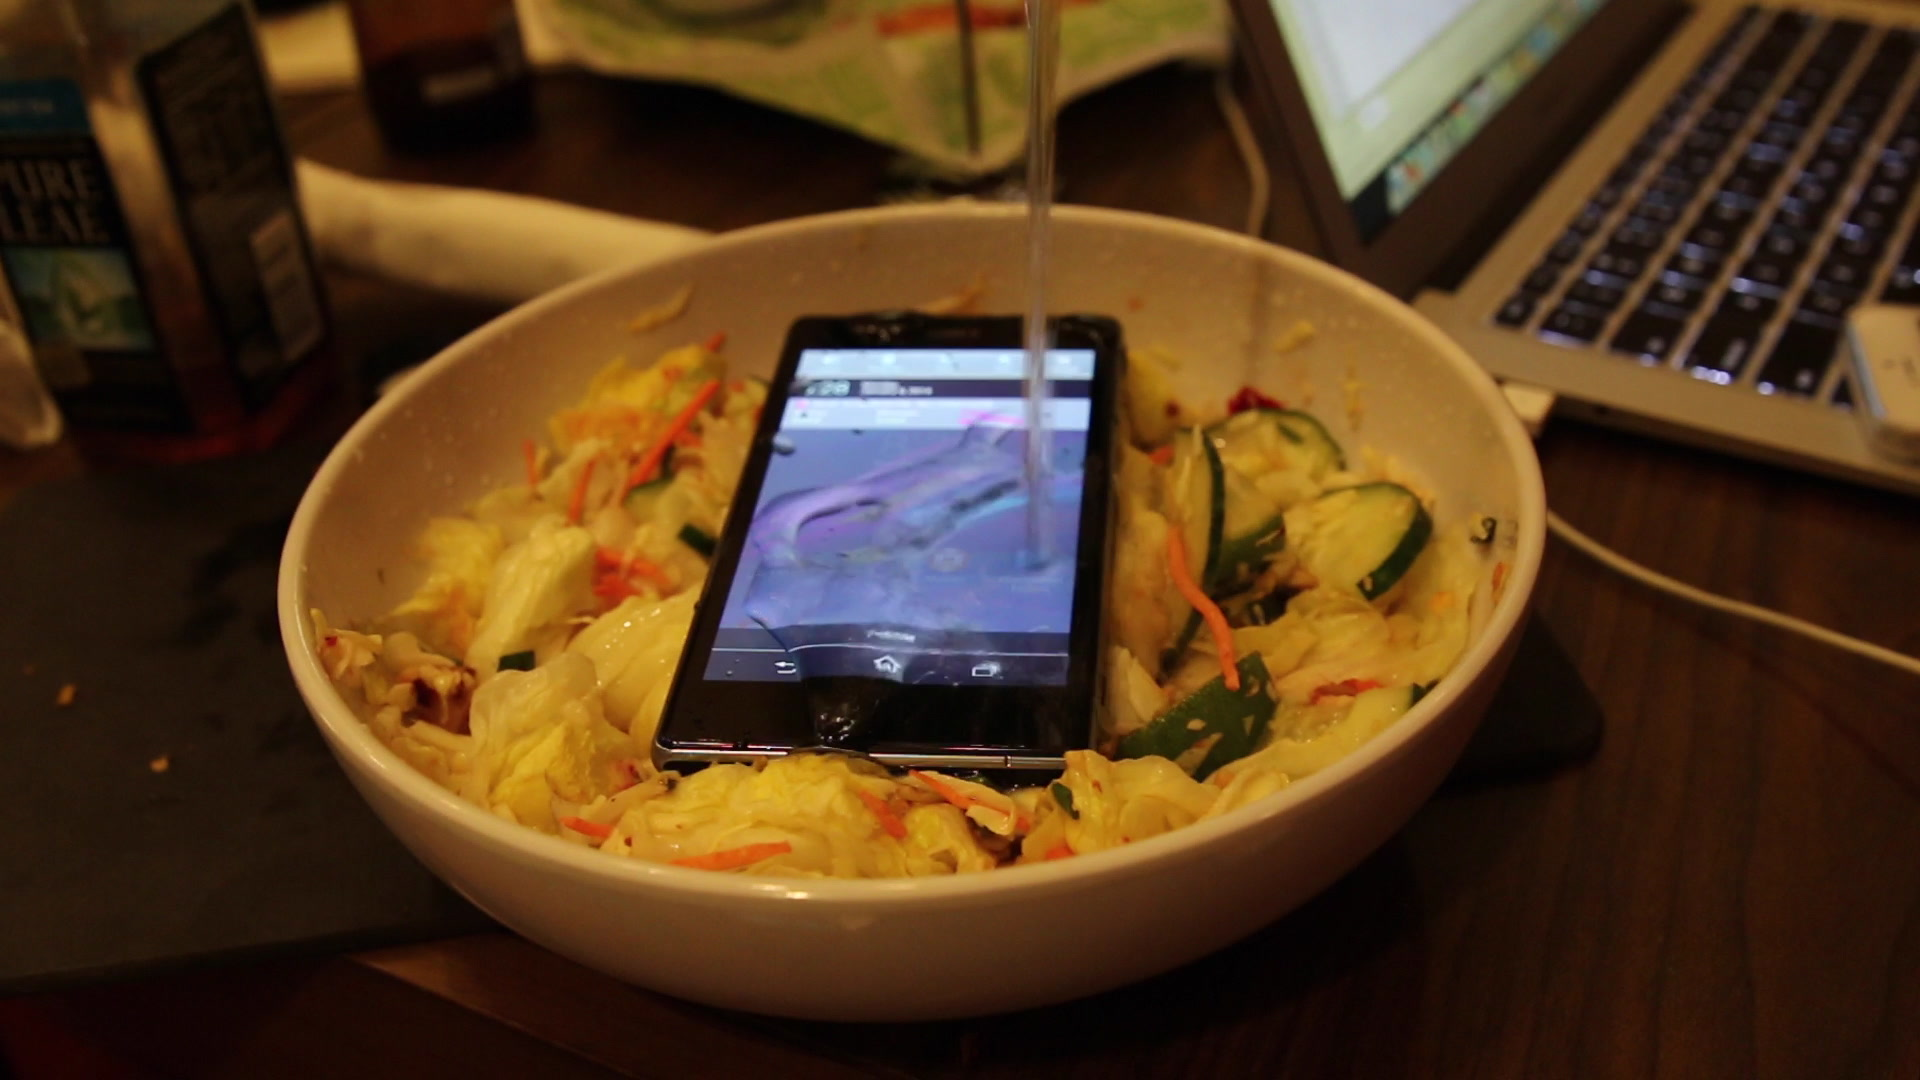 Xperia Z1S Water Resistance Test